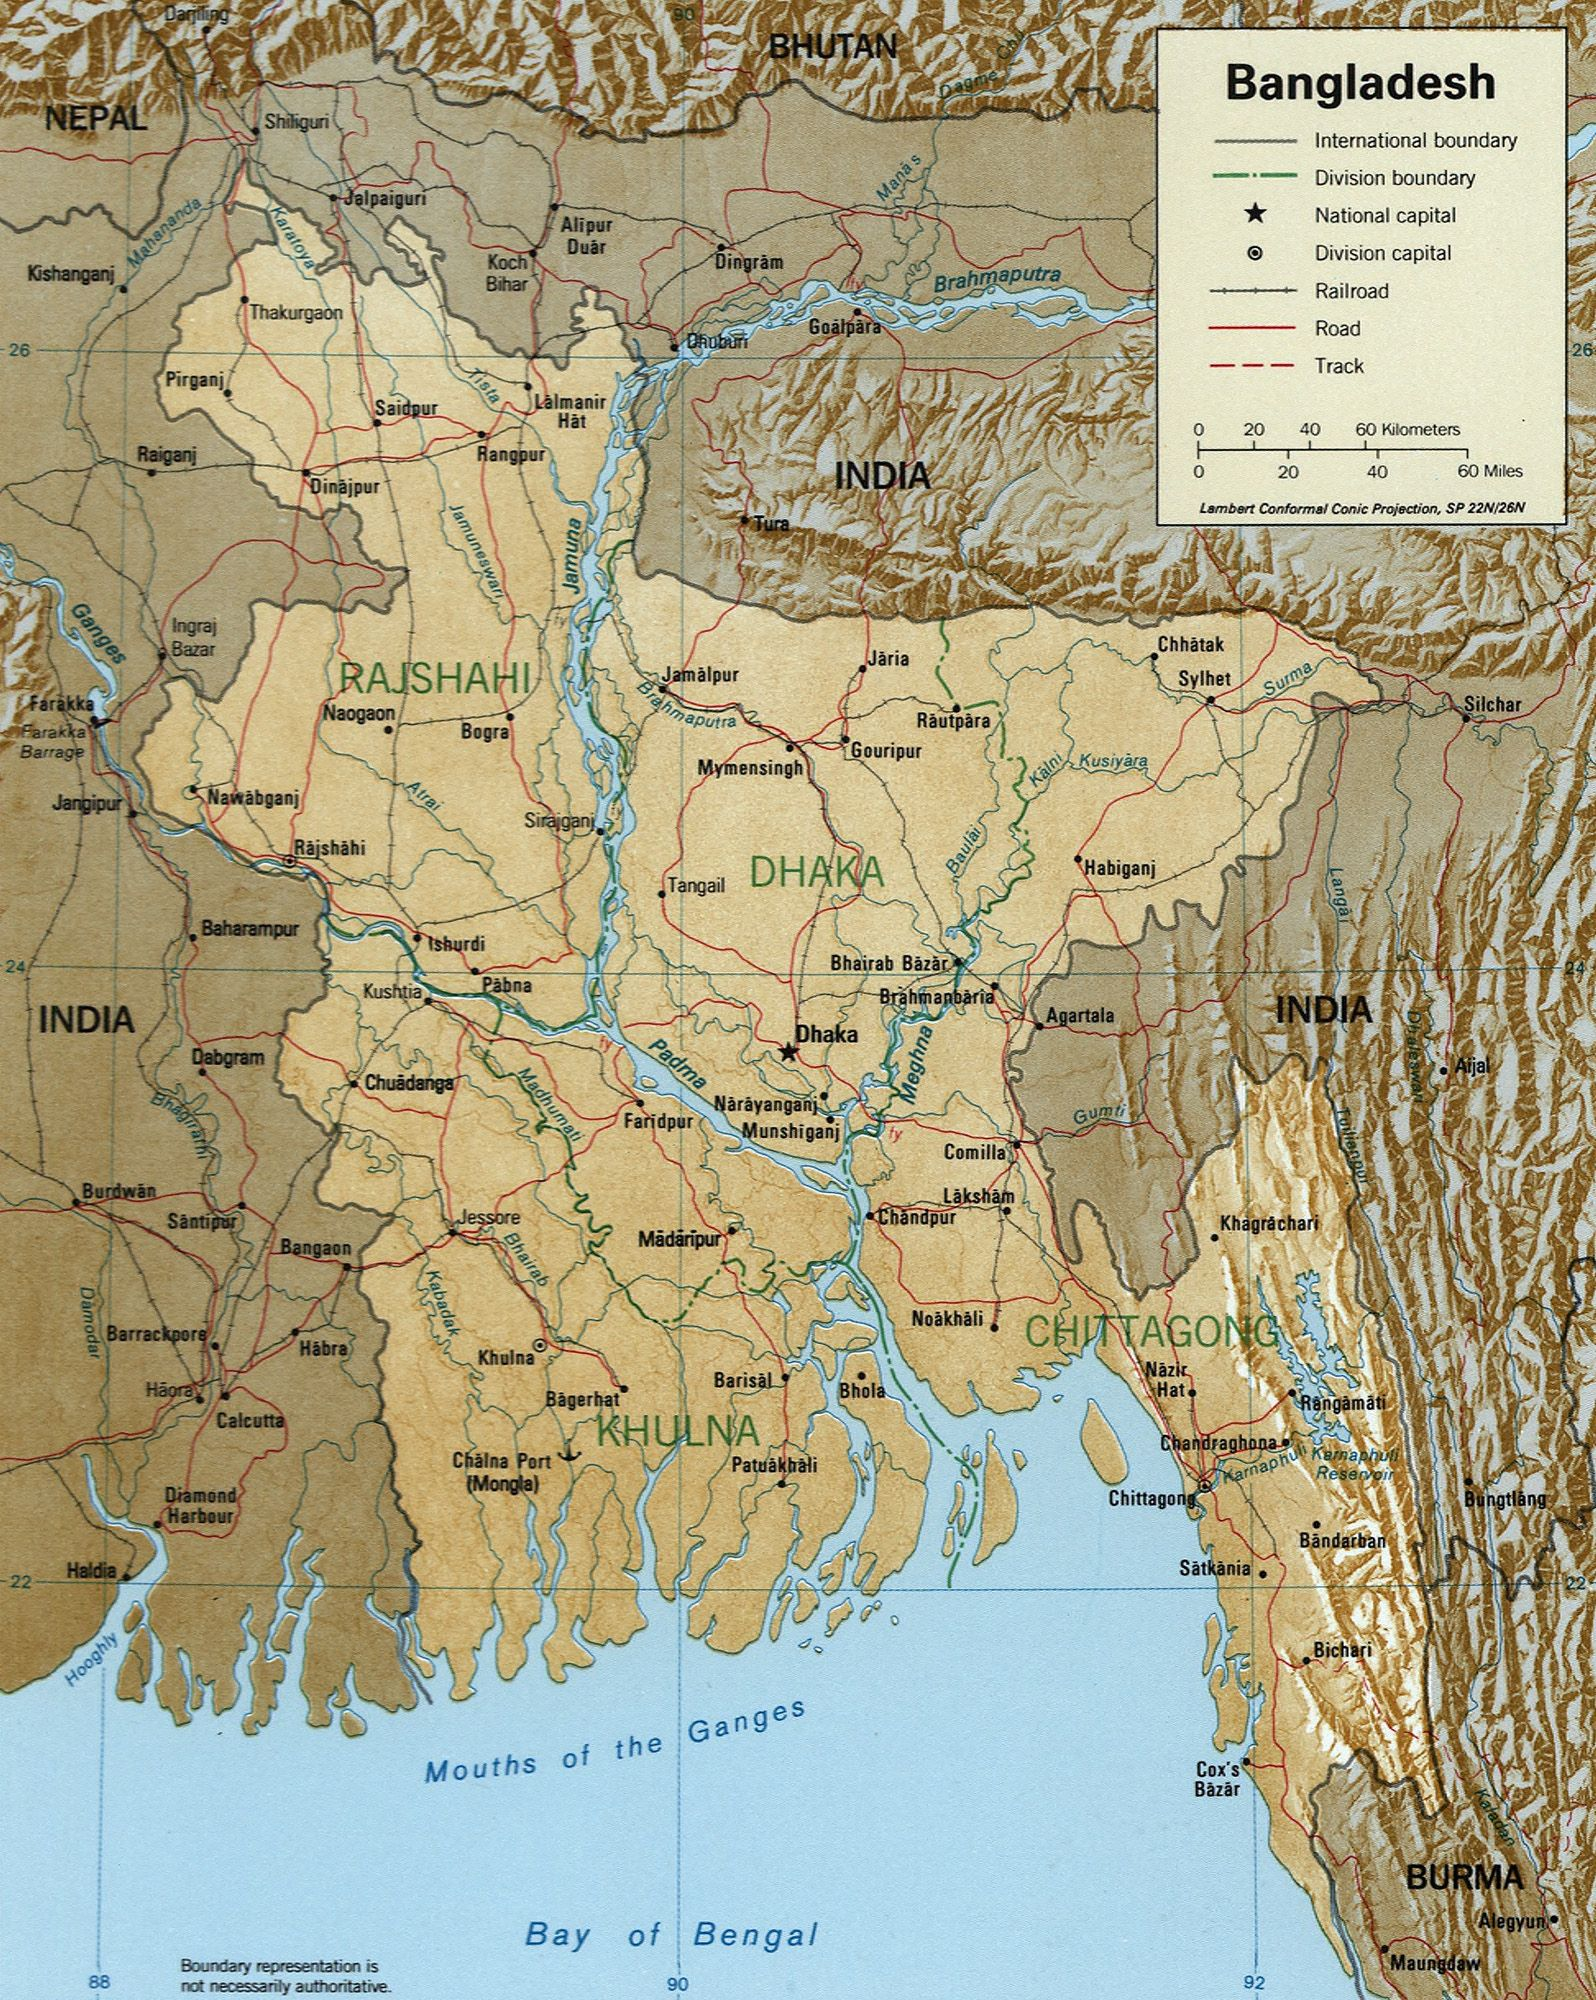 topographic map of bangladesh Bangladesh Geography Facts Google Search Asia Map India Map